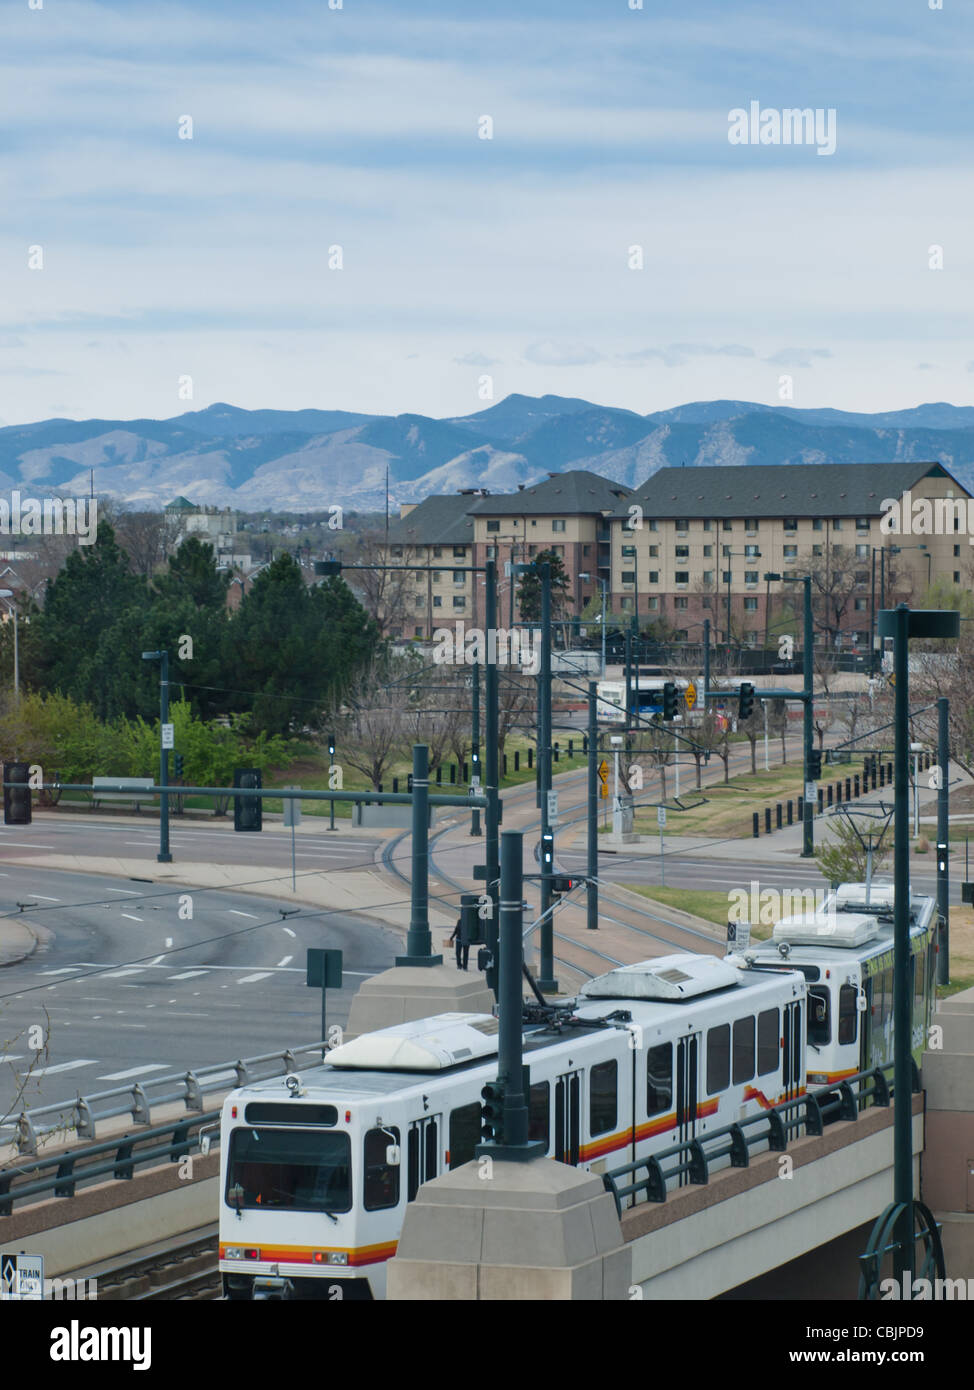 Lightrail in downtown Denver. - Stock Image